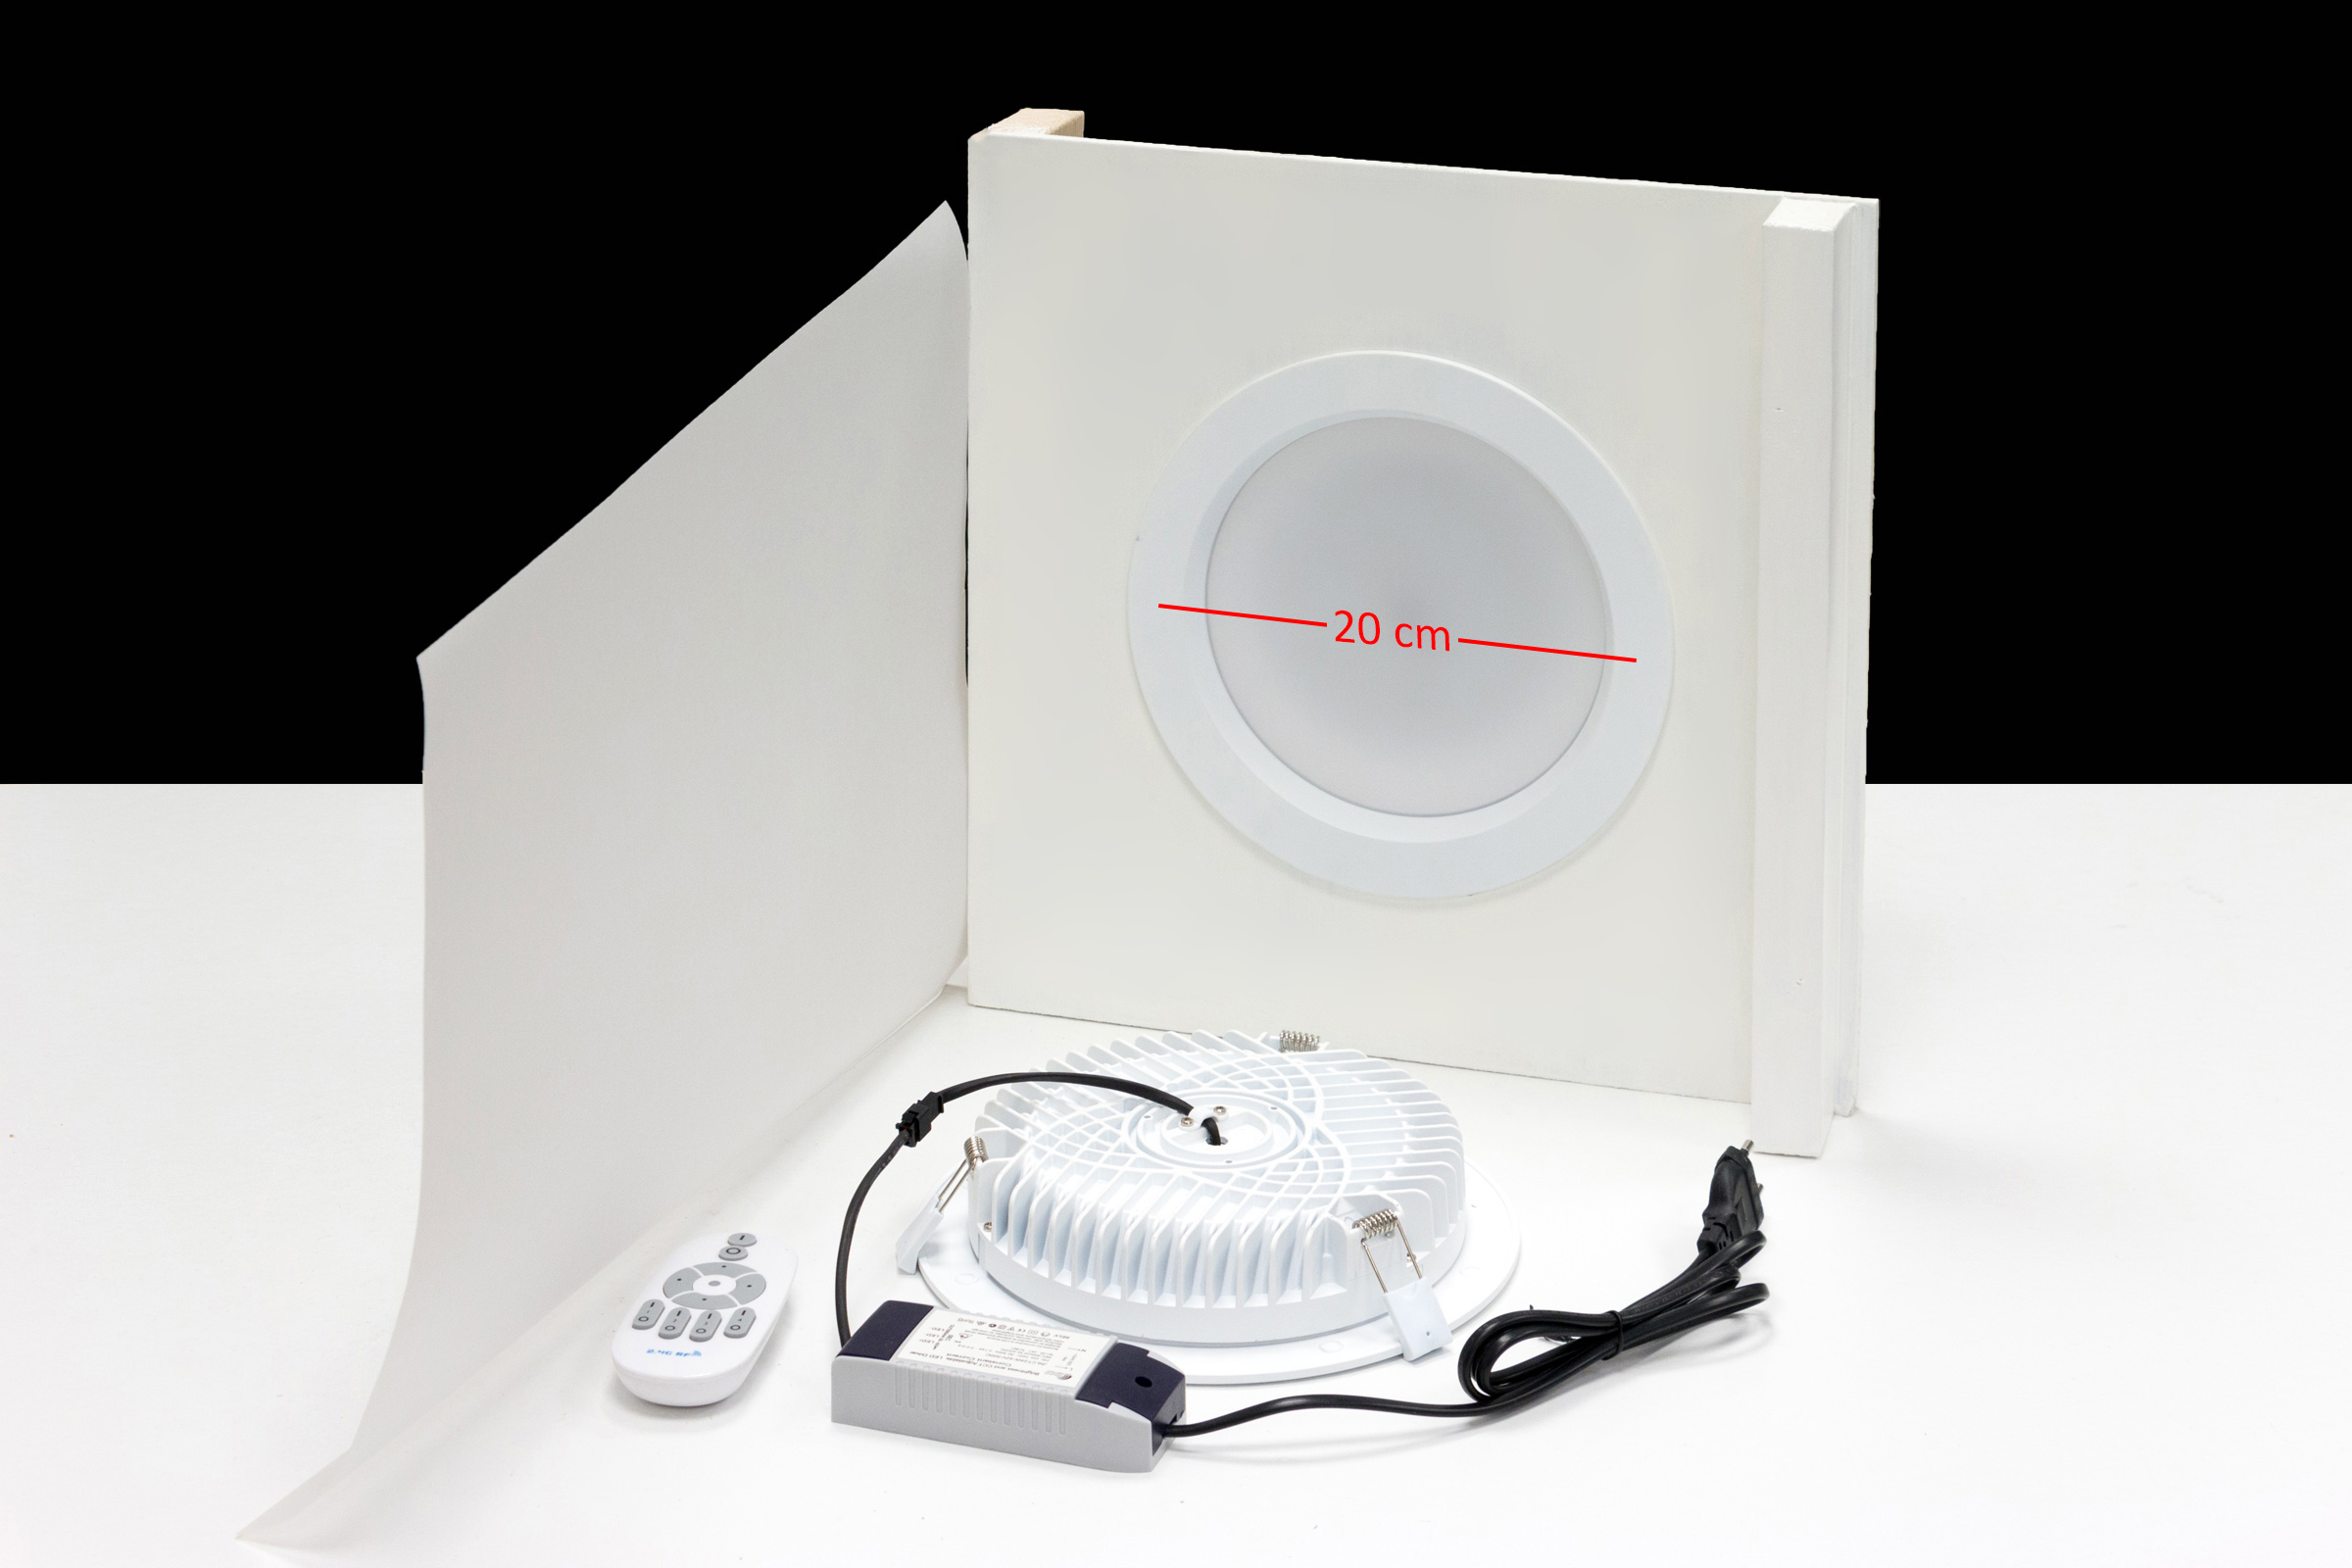 Led Lampen Kleurtemperatuur : Led downlights dhz productfotografie